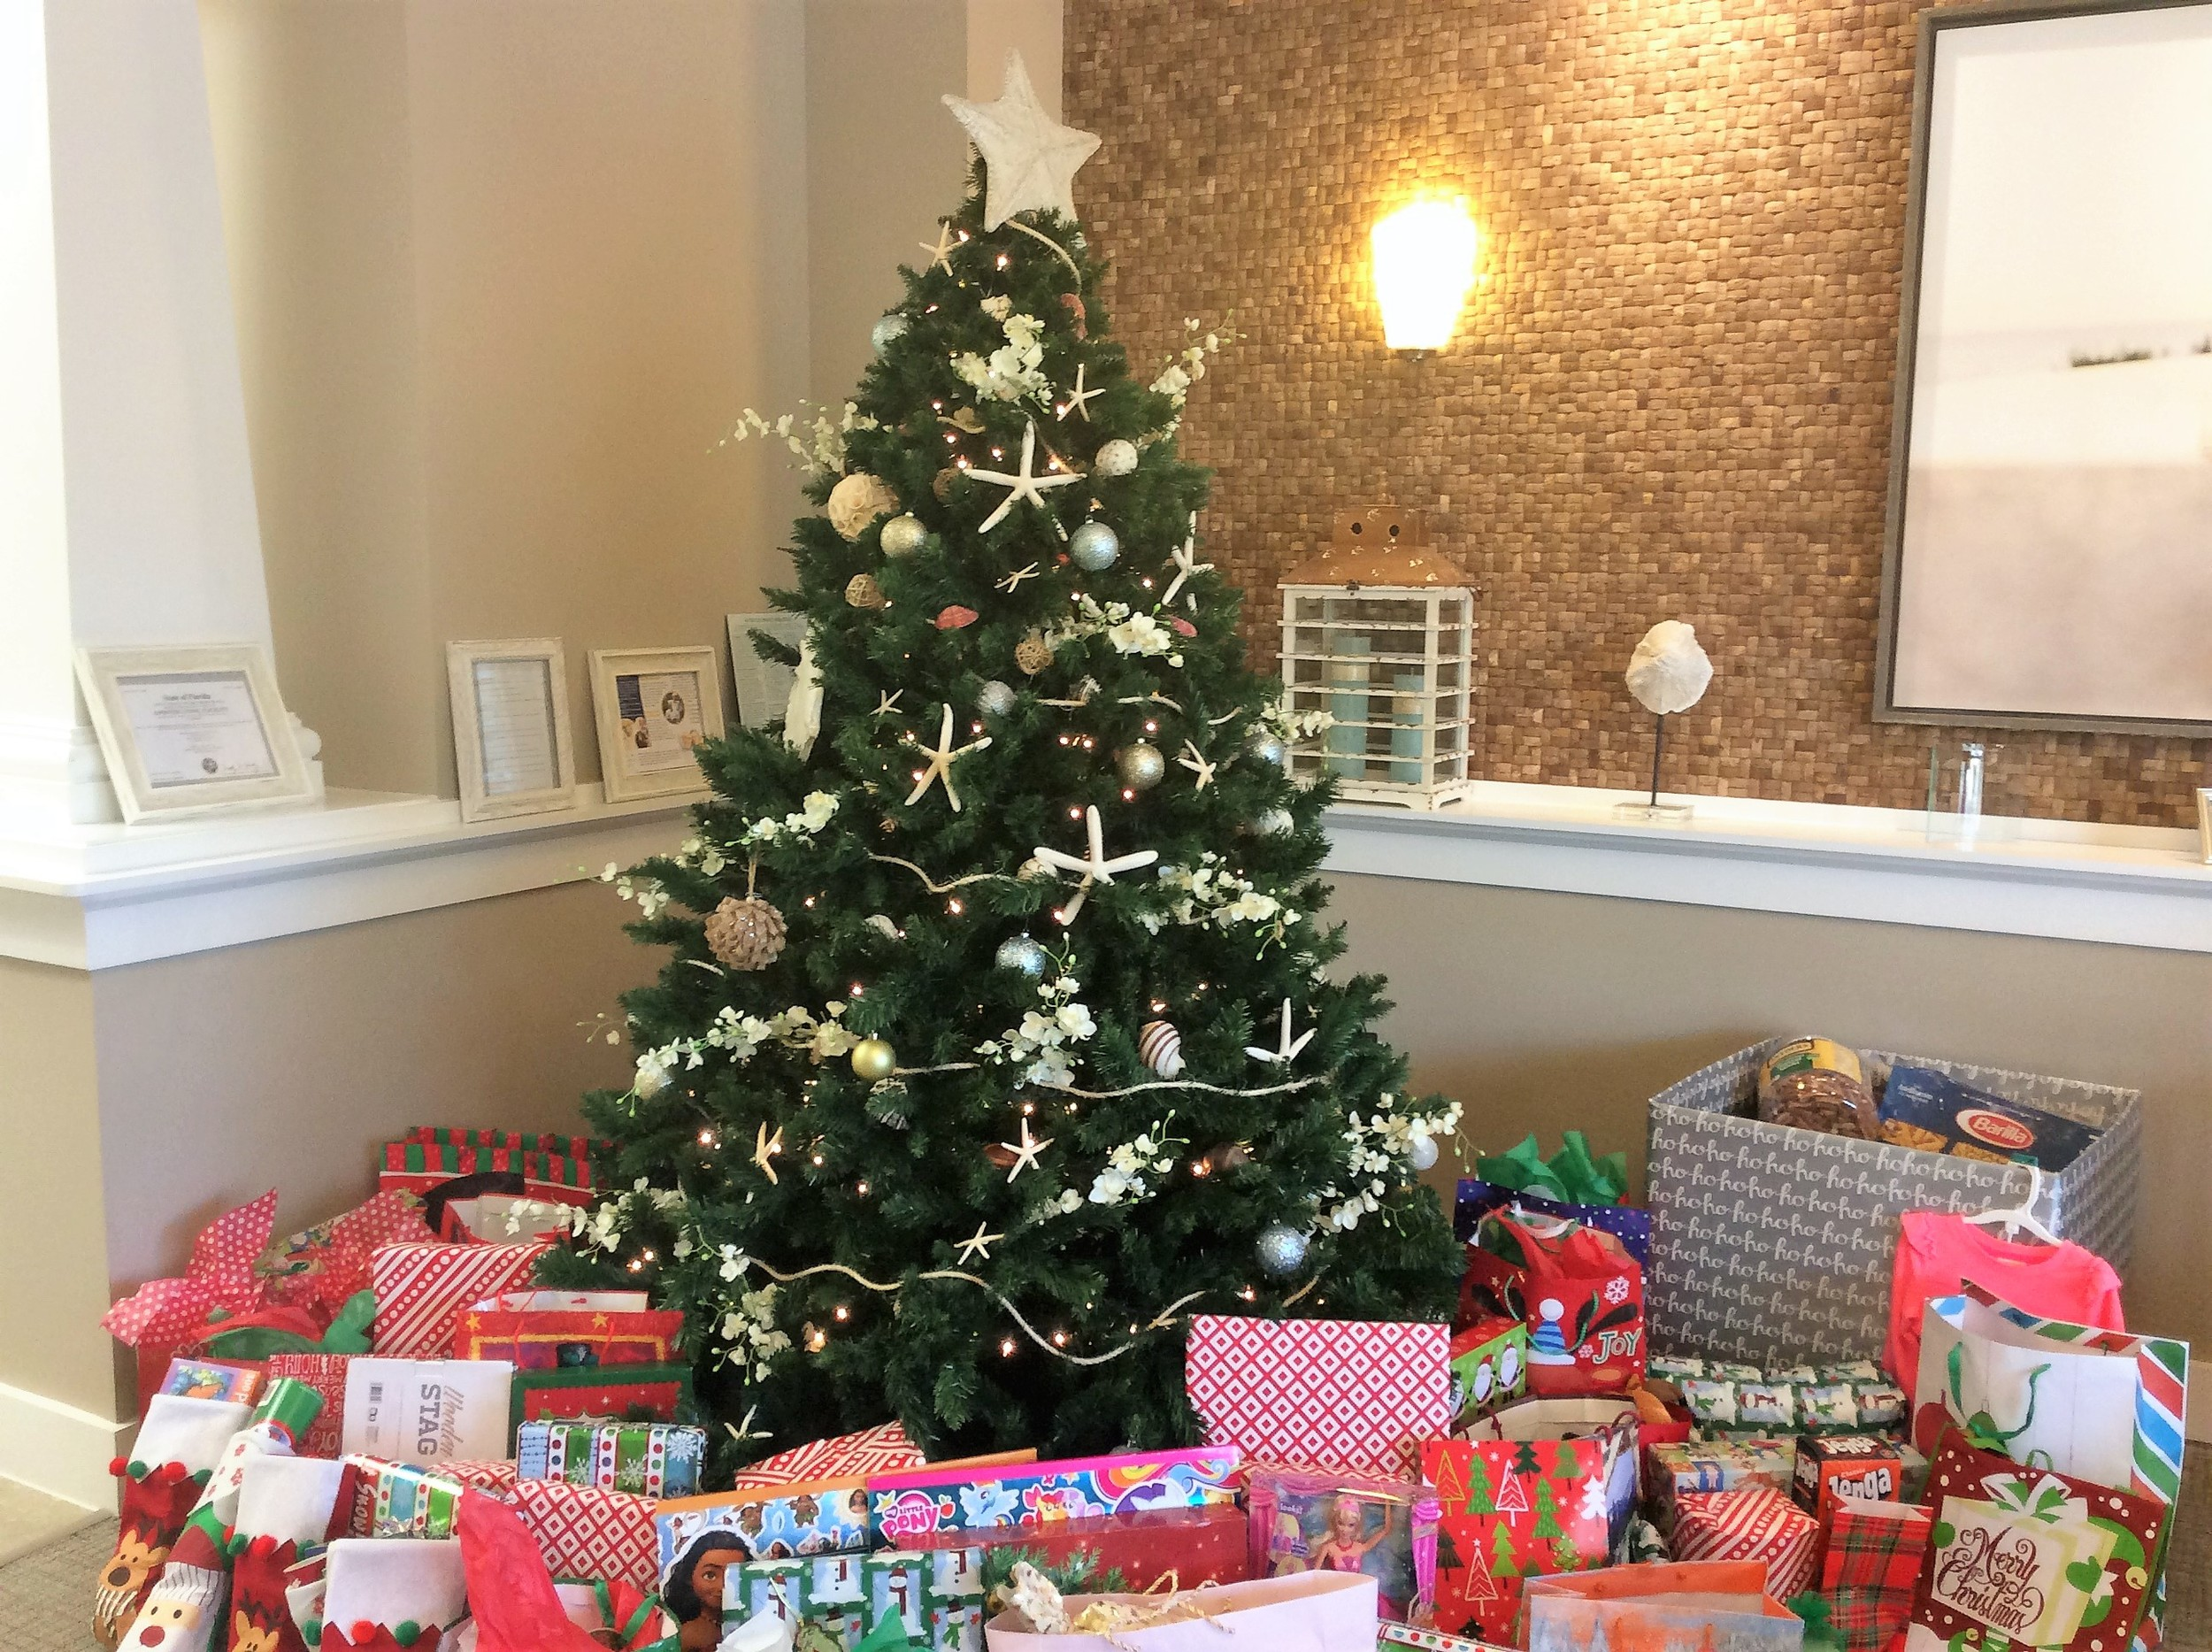 Arbor Terrace \'adopts\' local family in need for Christmas | The ...